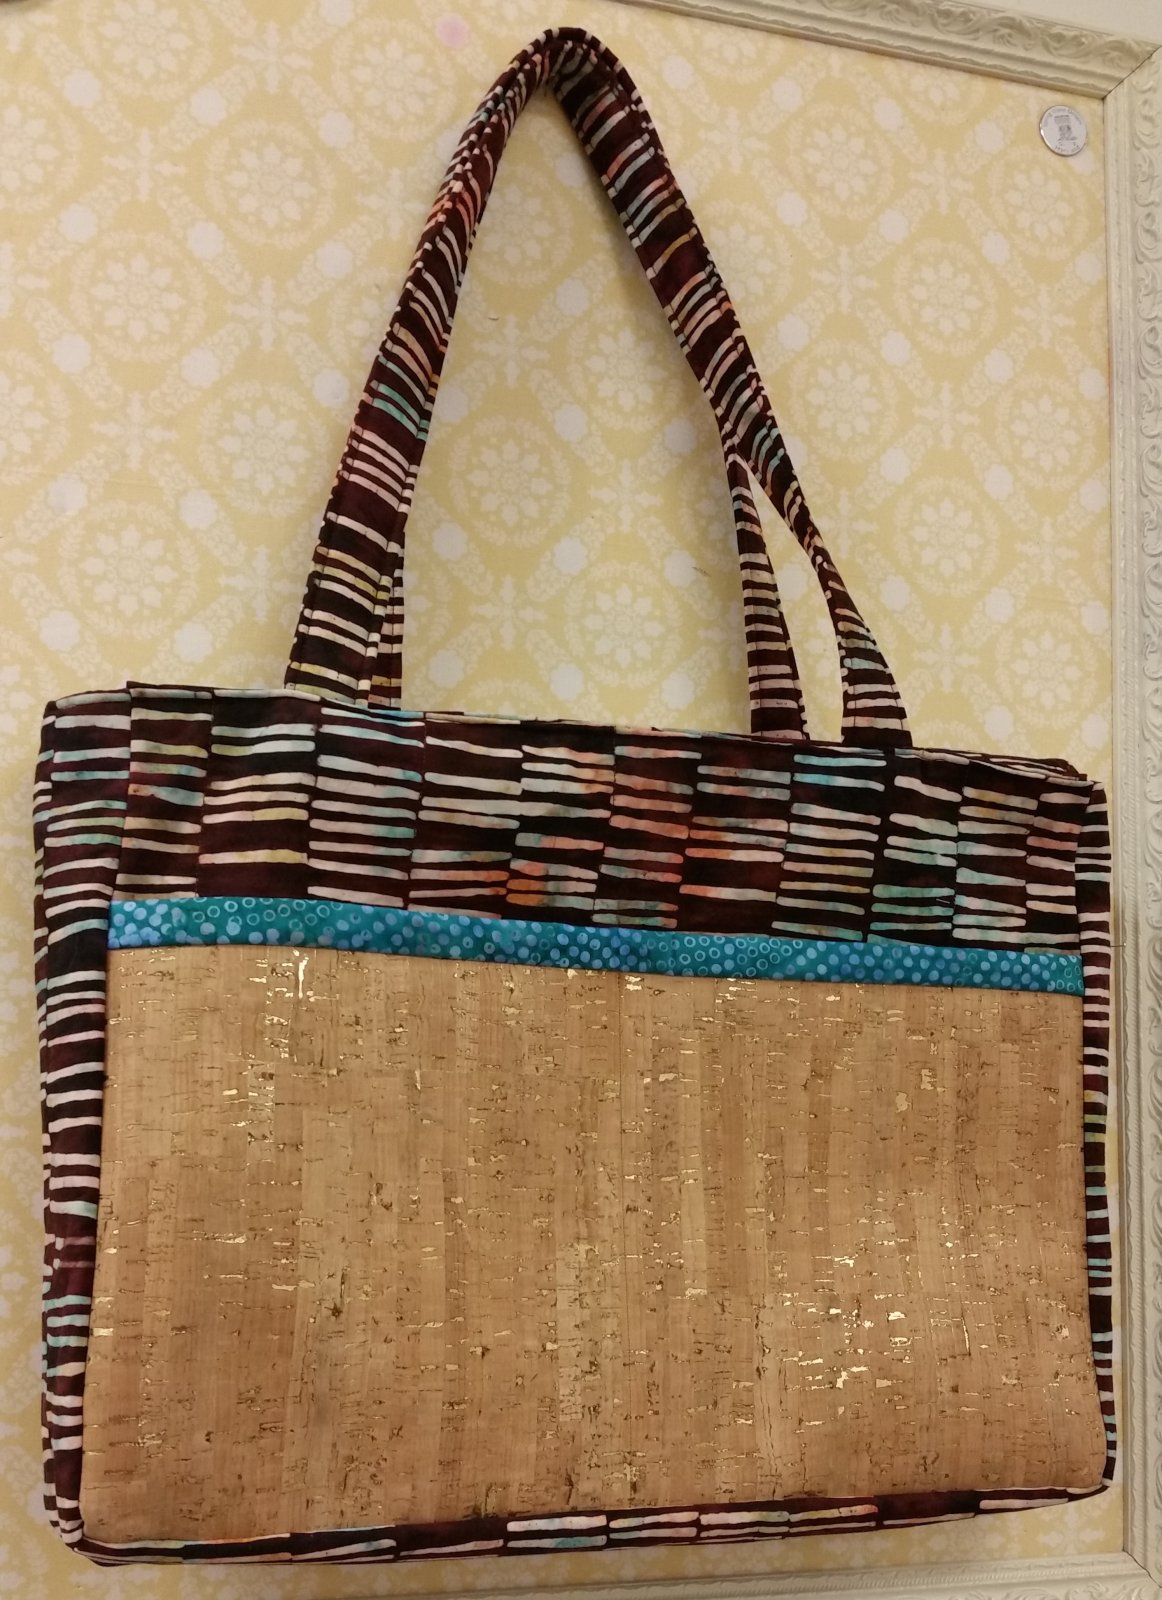 Corky Purse Pattern by Suzzie Schuyler of Sew Bee It